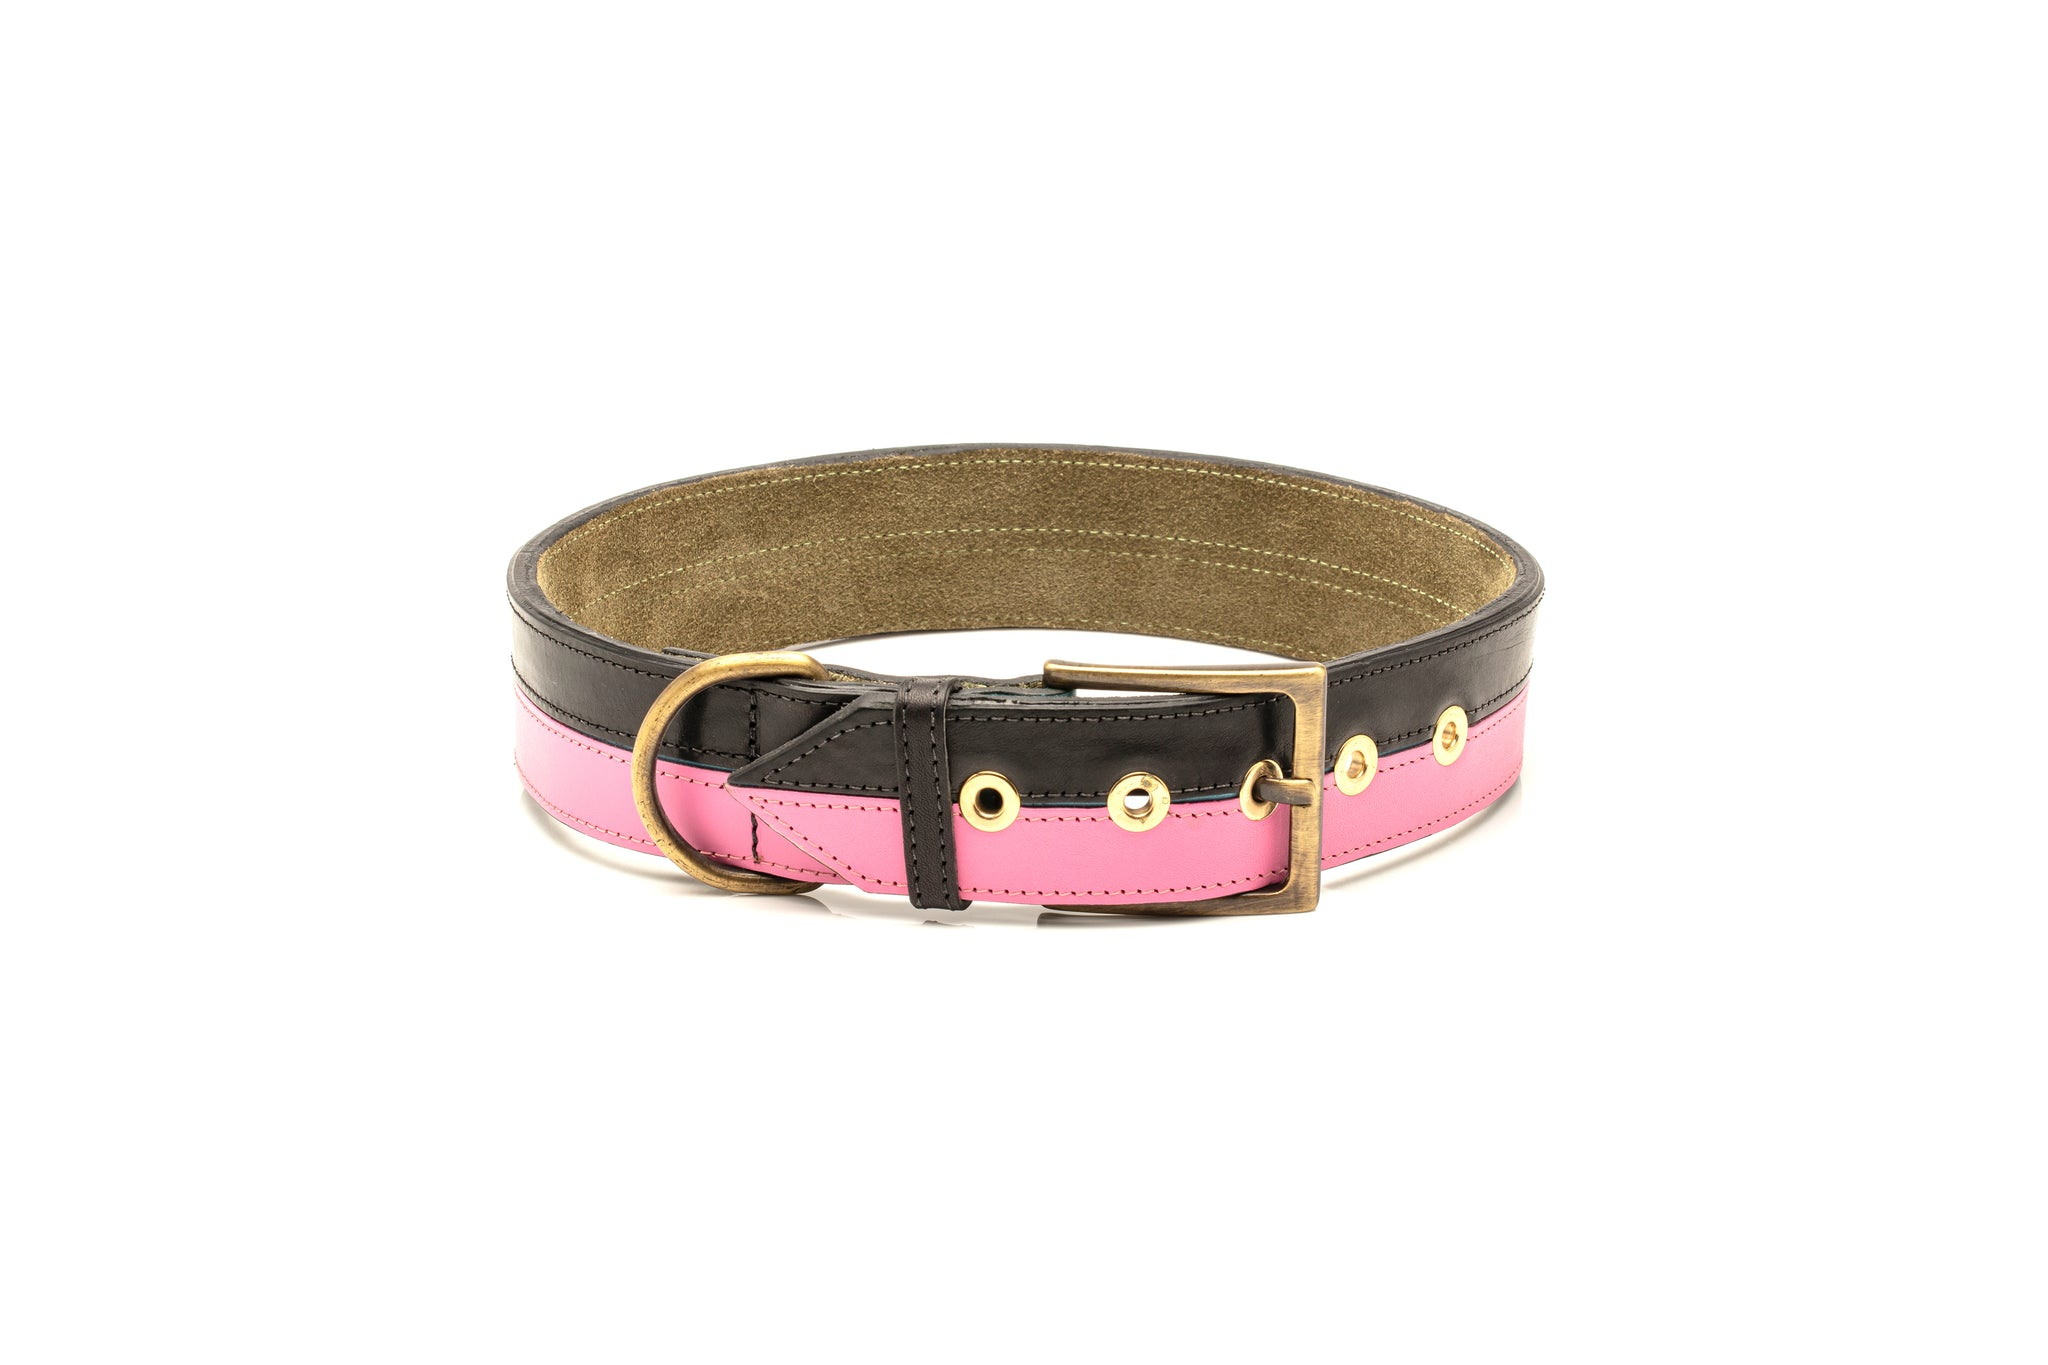 TWO-TONE CONTRAST LEATHER COLLAR IN YUCATAN BLACK & FUSHIA PINK